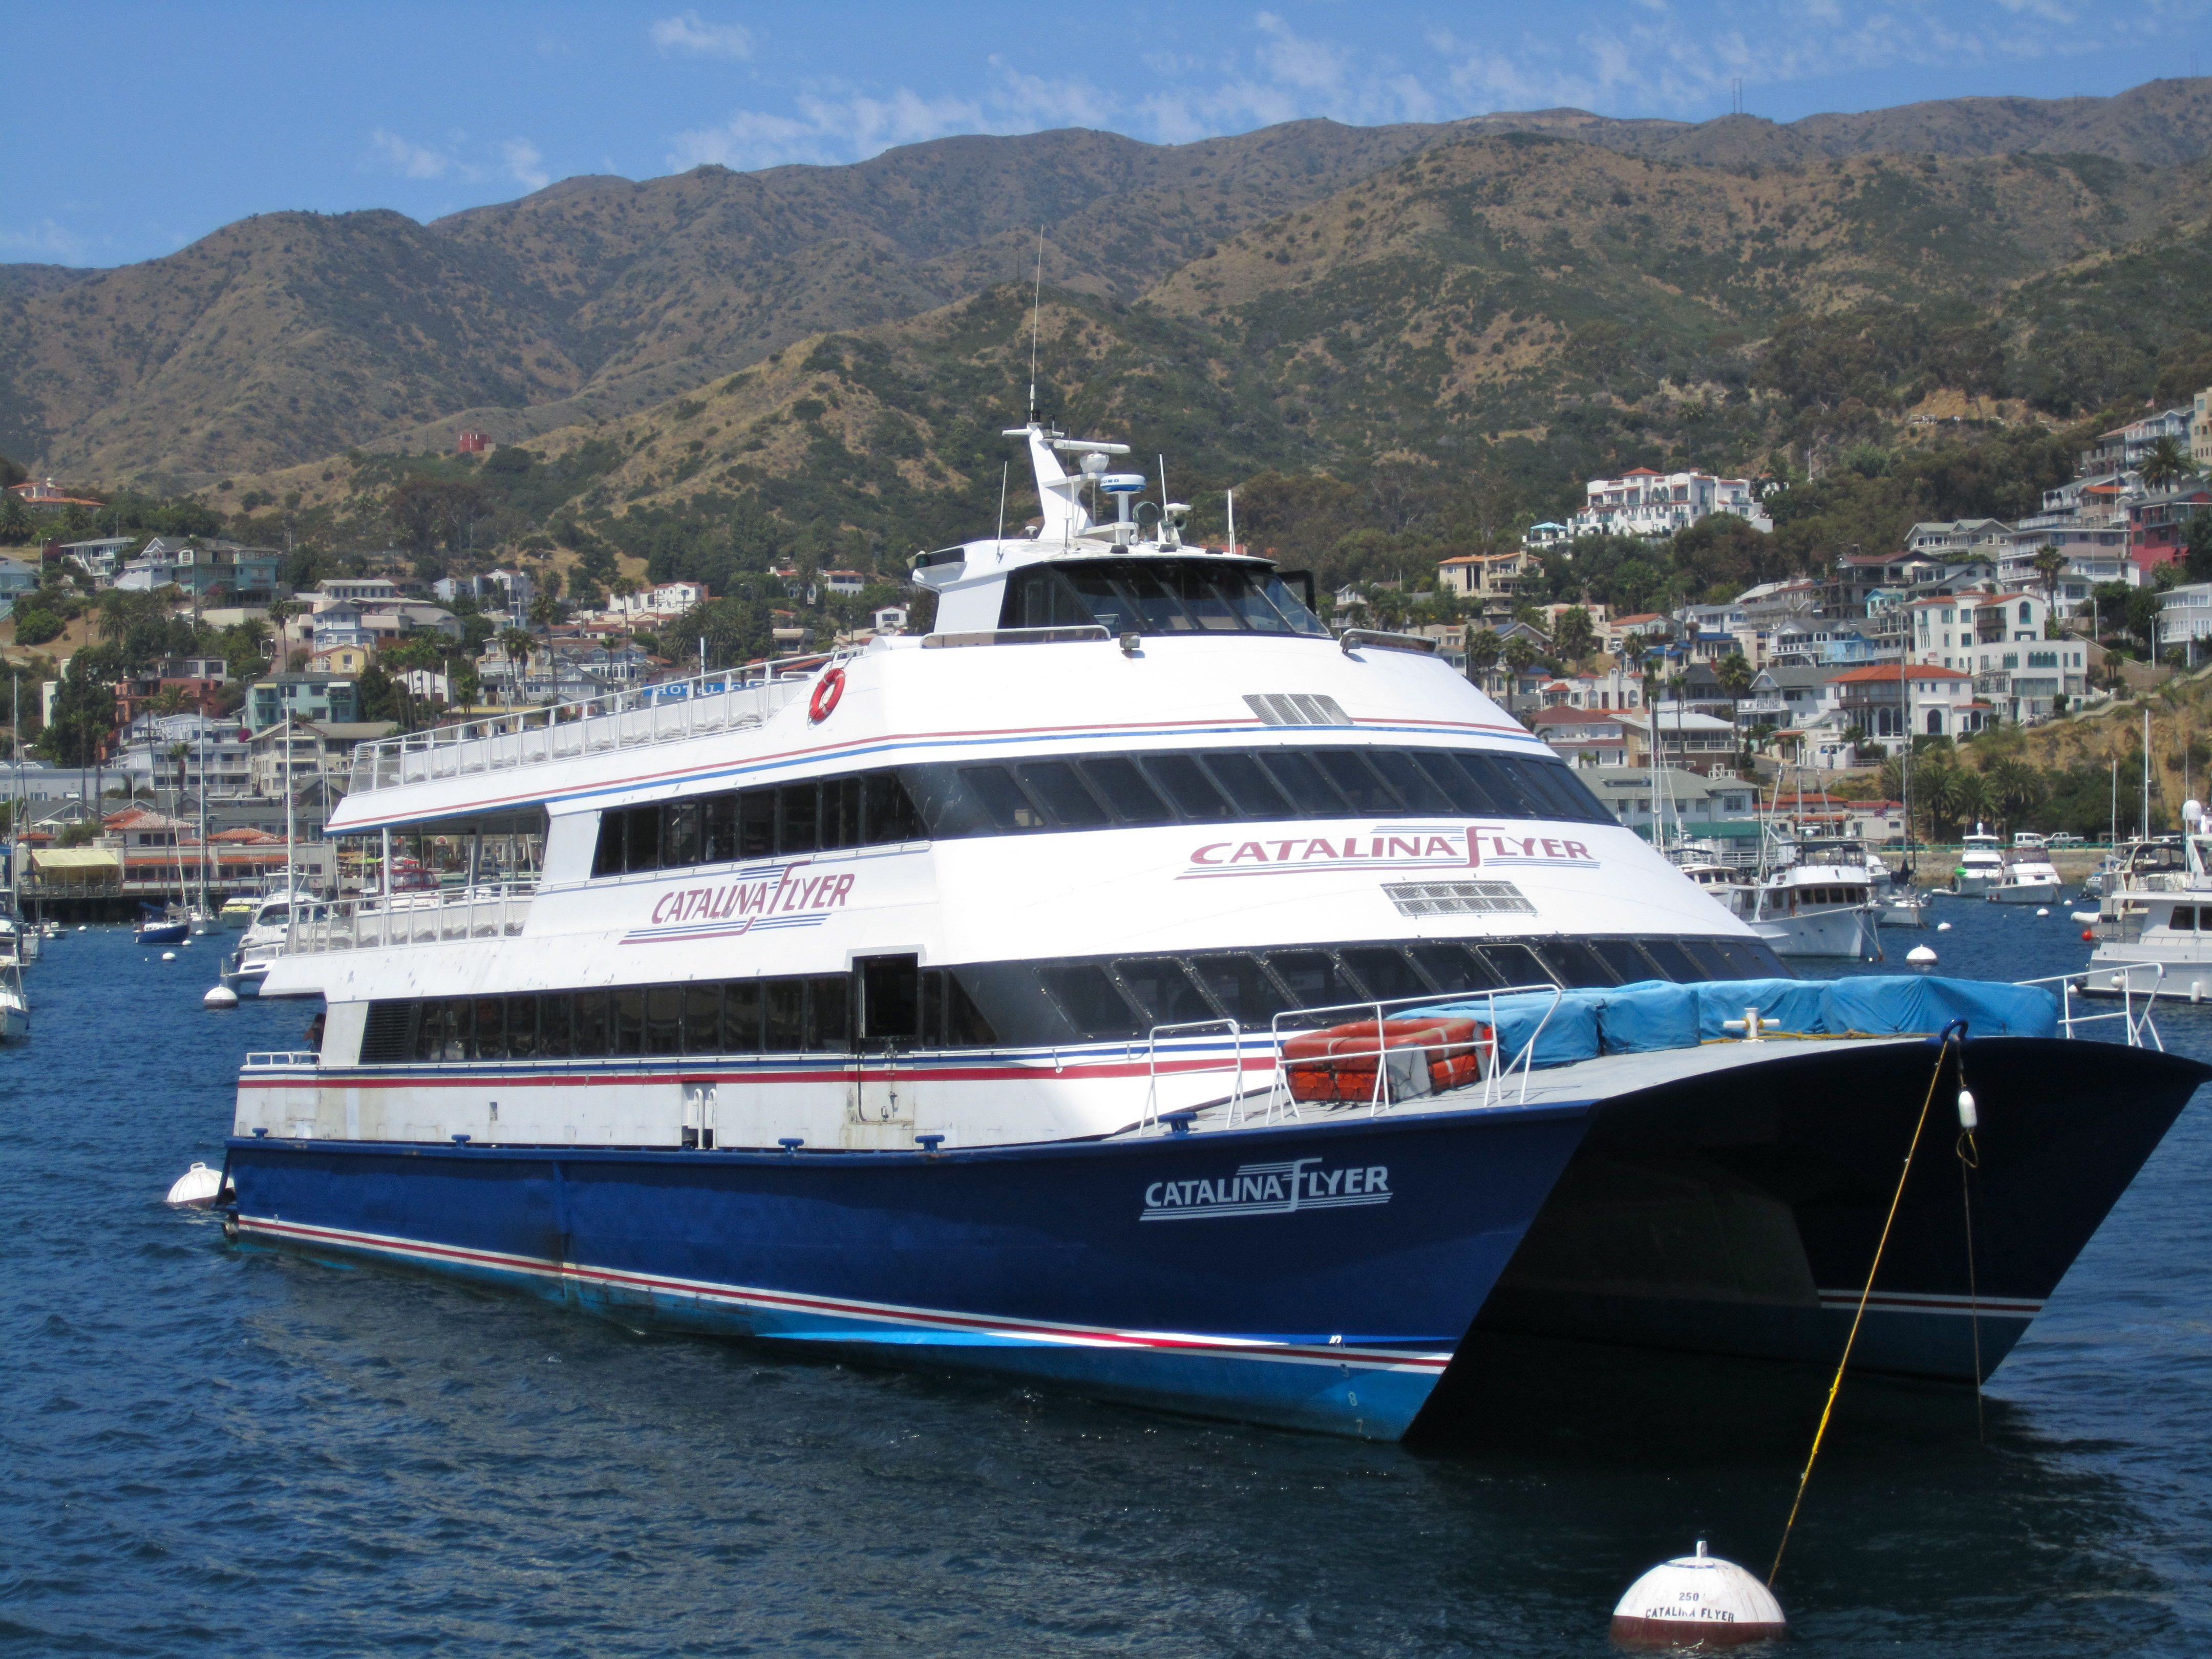 Catalina Flyer With Daily Trips From Newport Beach Ca Places To Travel Trip Newport Beach